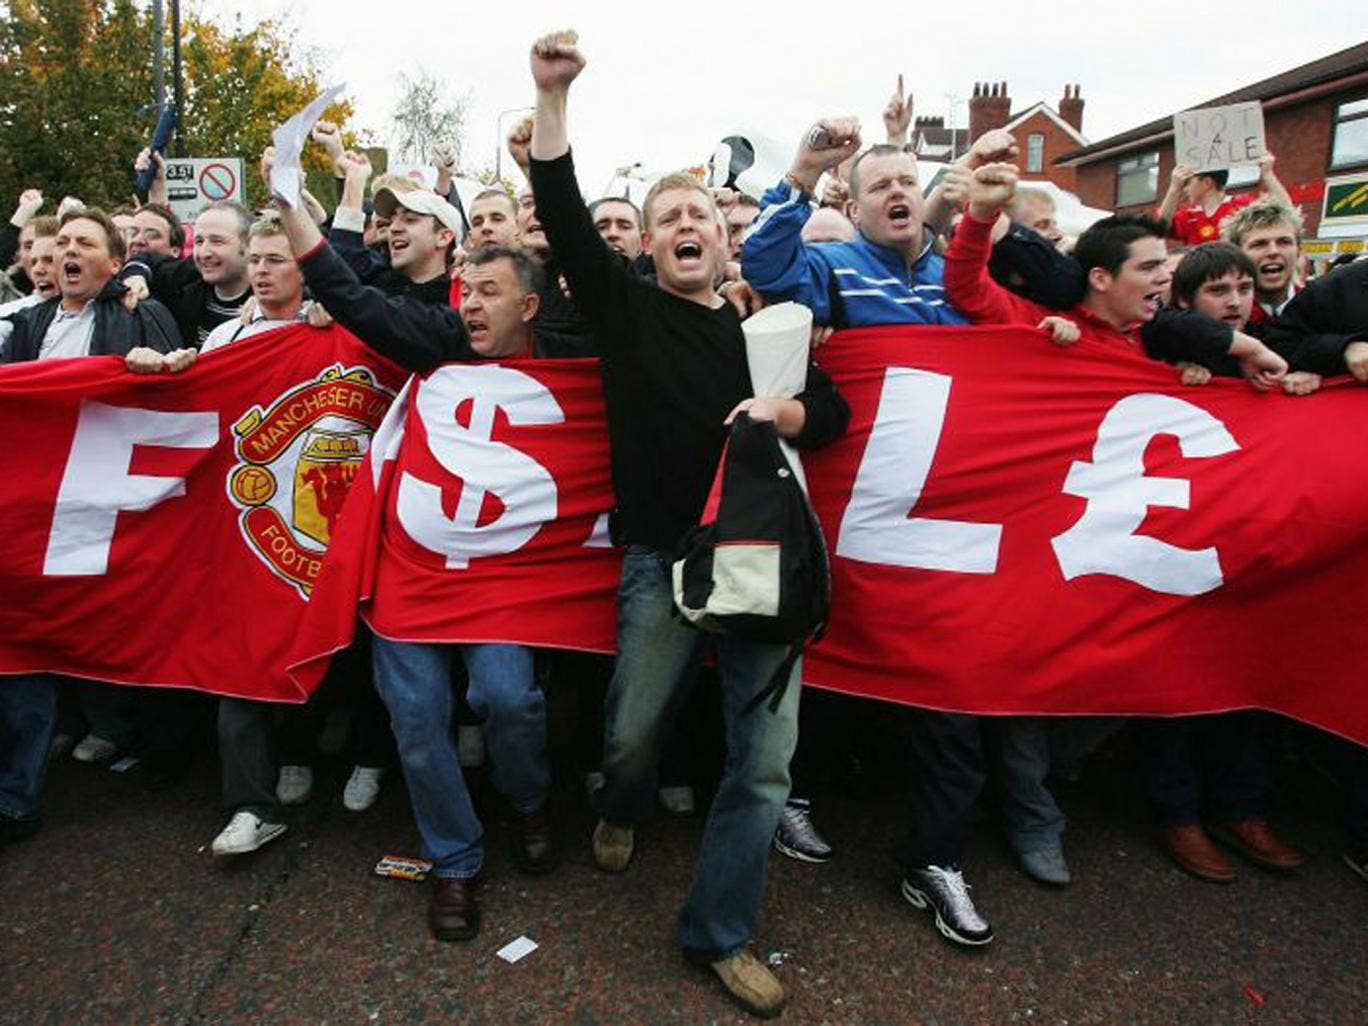 The architects of protest against the Glazer family have taken a new step to preserve the soul of Manchester United